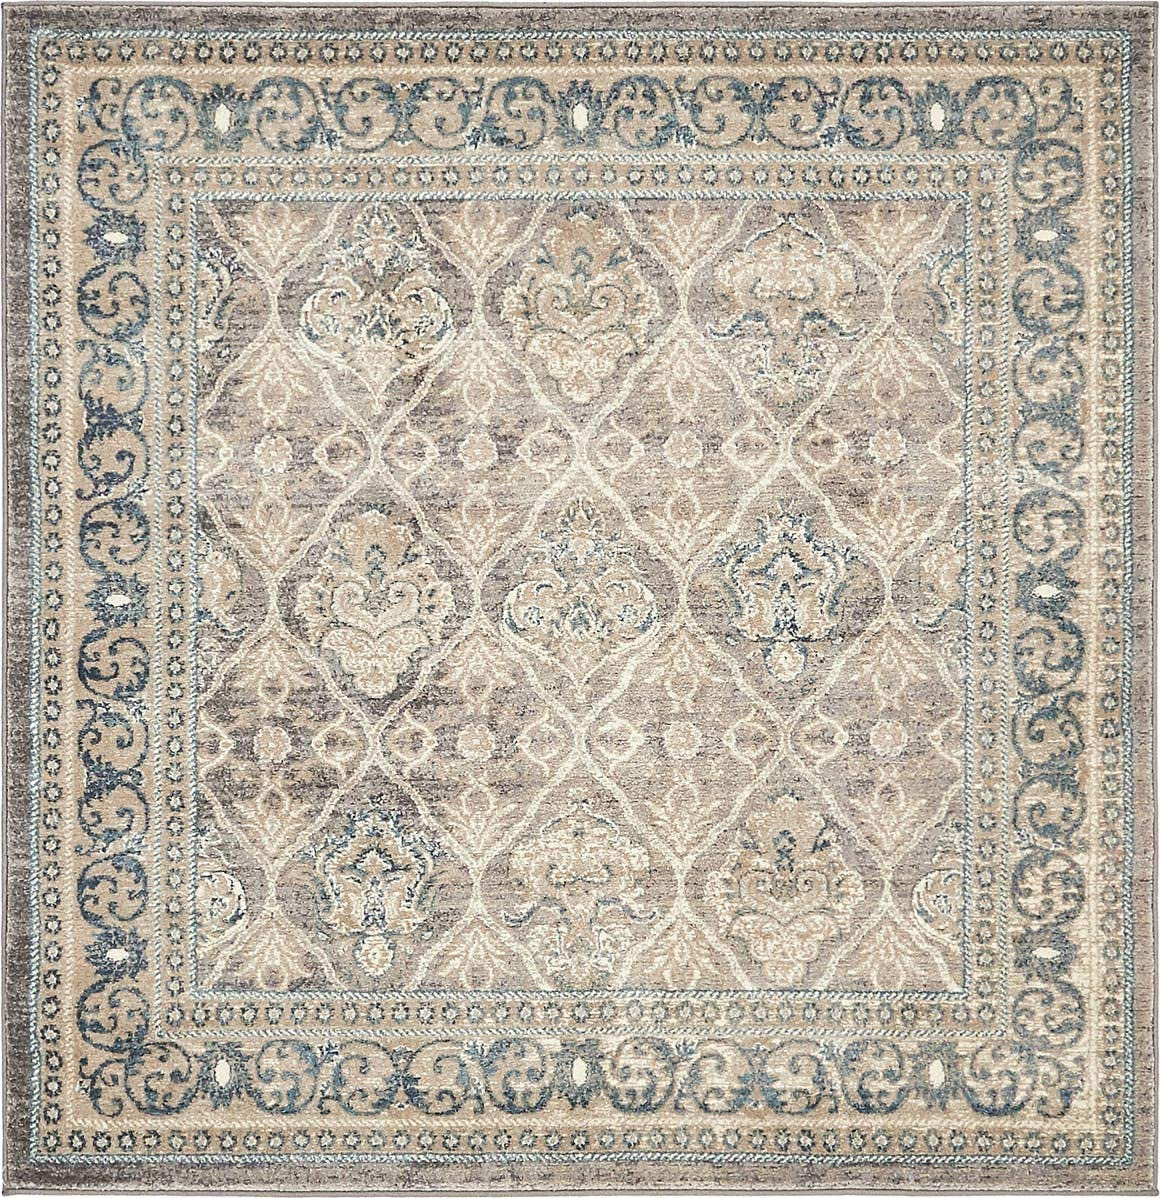 Unique Loom Salzburg Collection Traditional Oriental Gray Square Rug 5 0 x 5 0